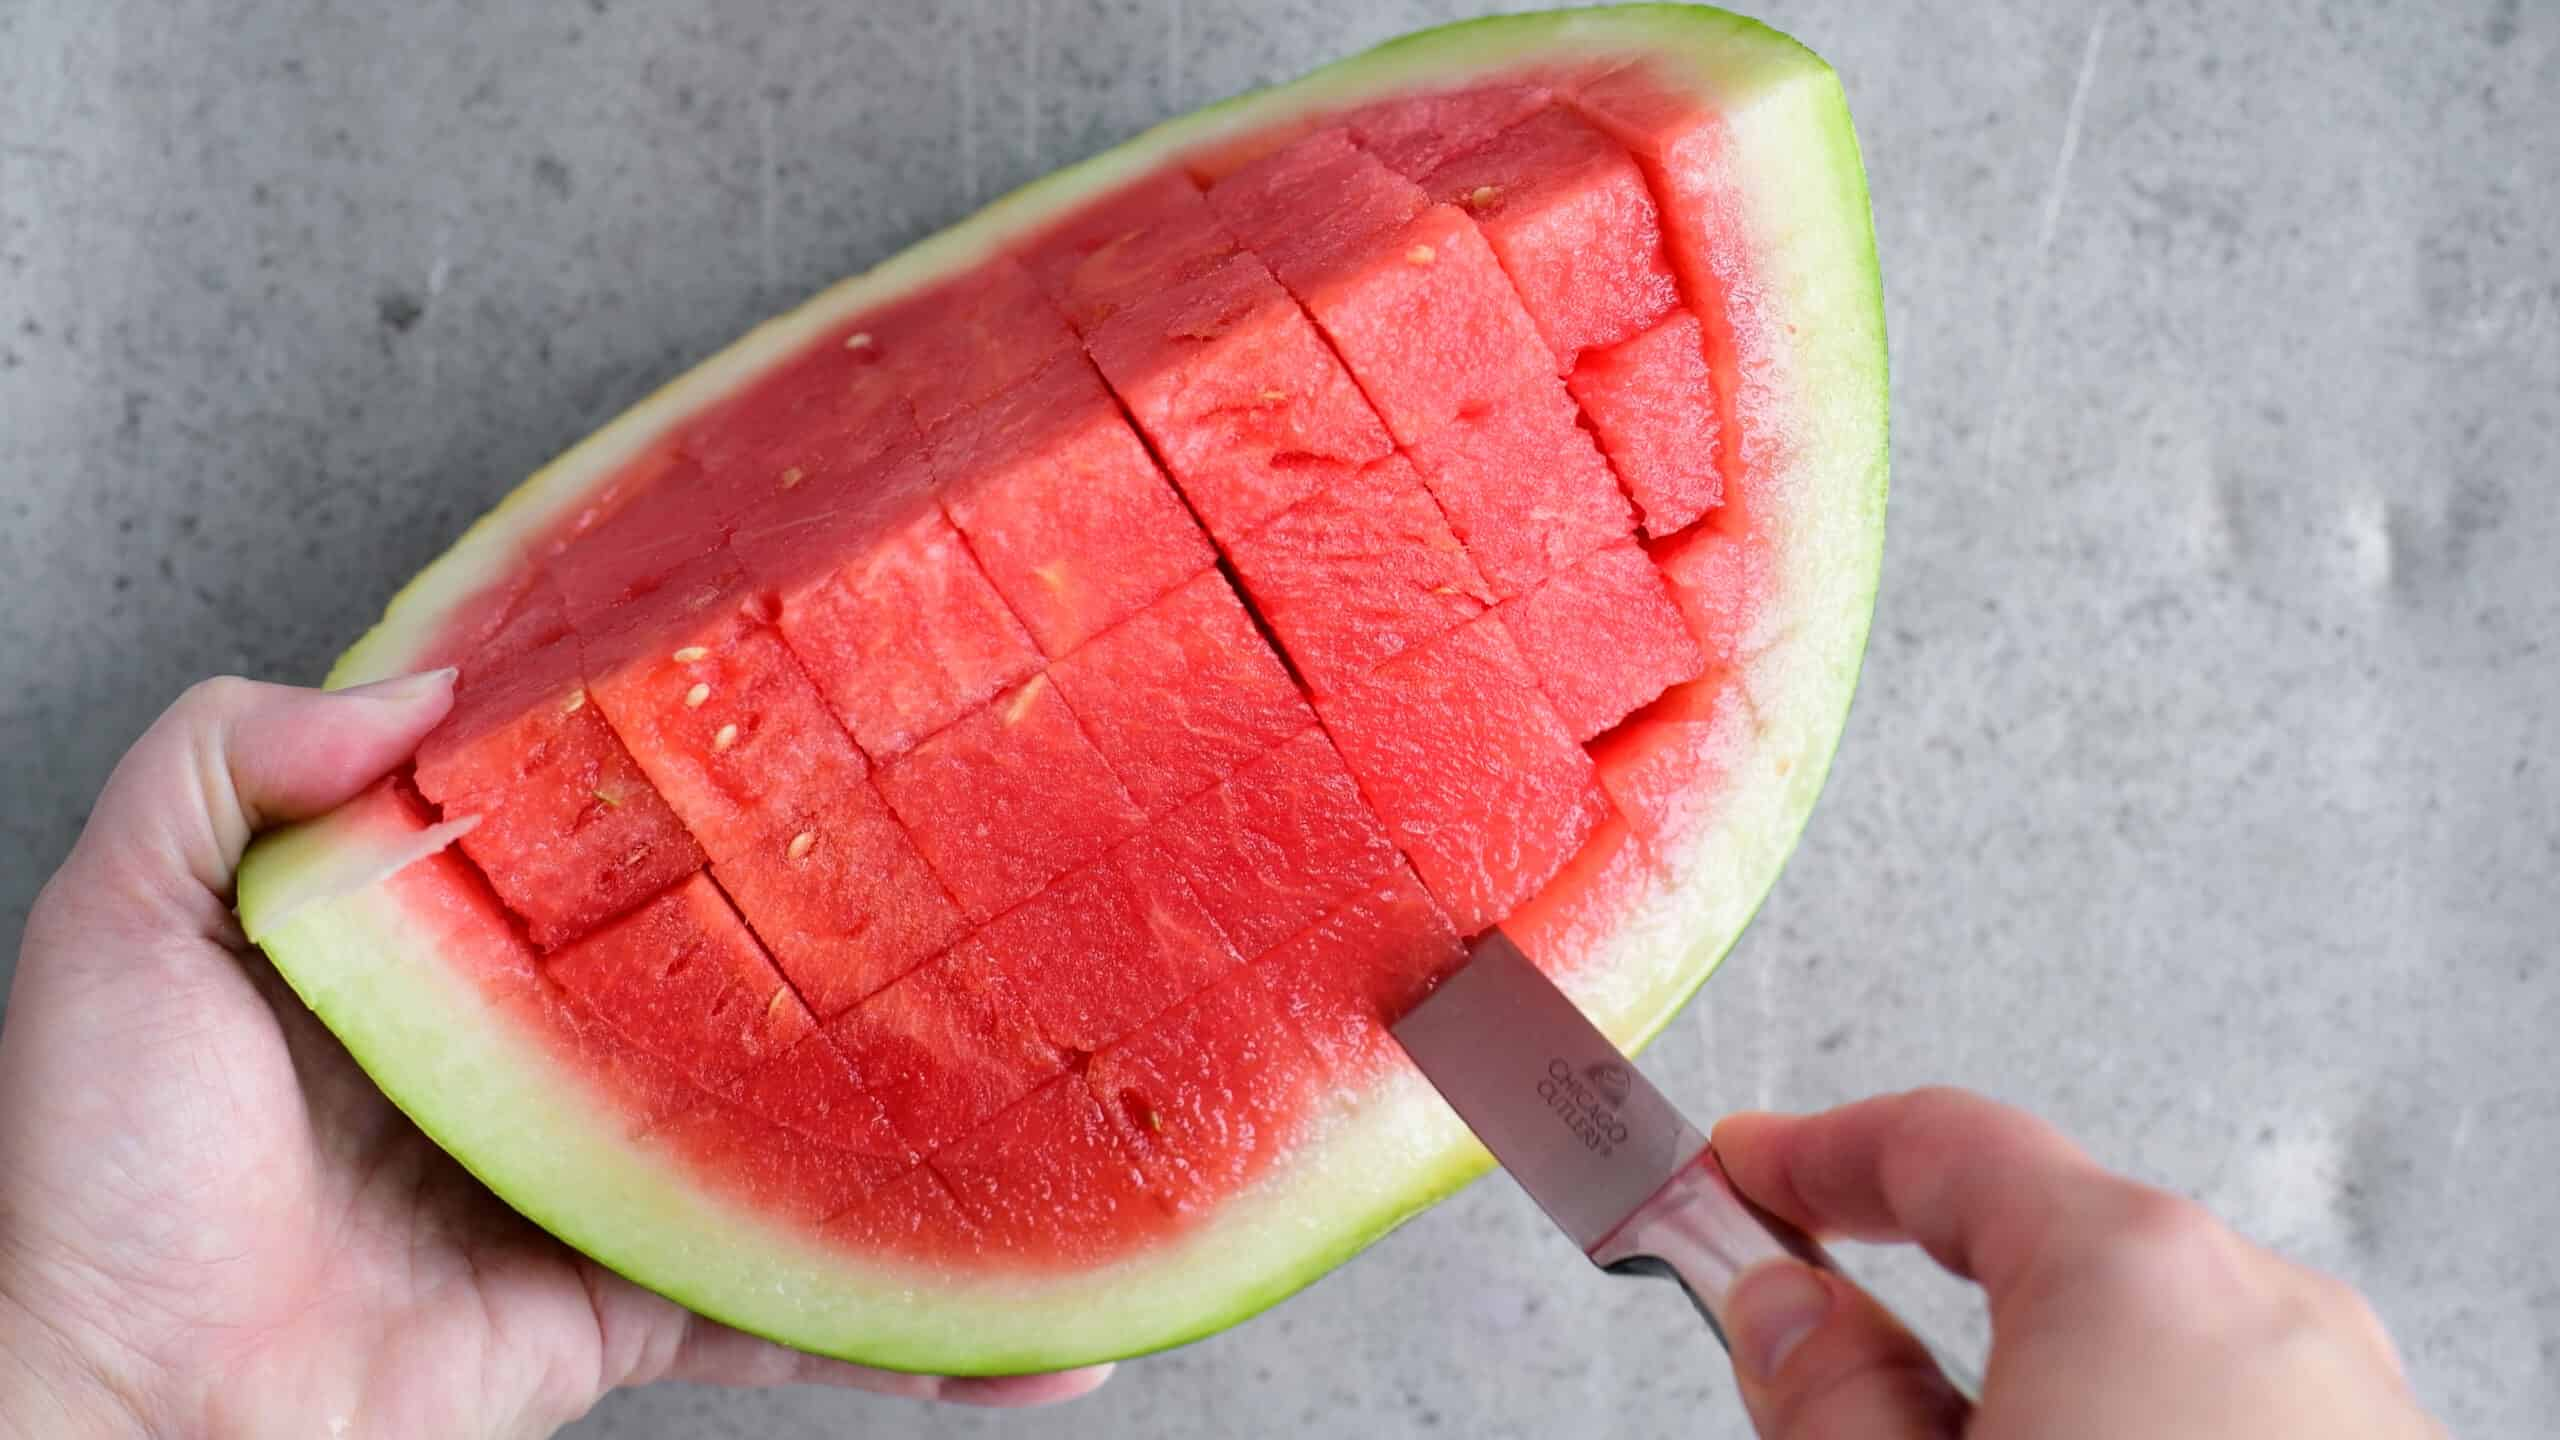 cutting cubes from a watermelon